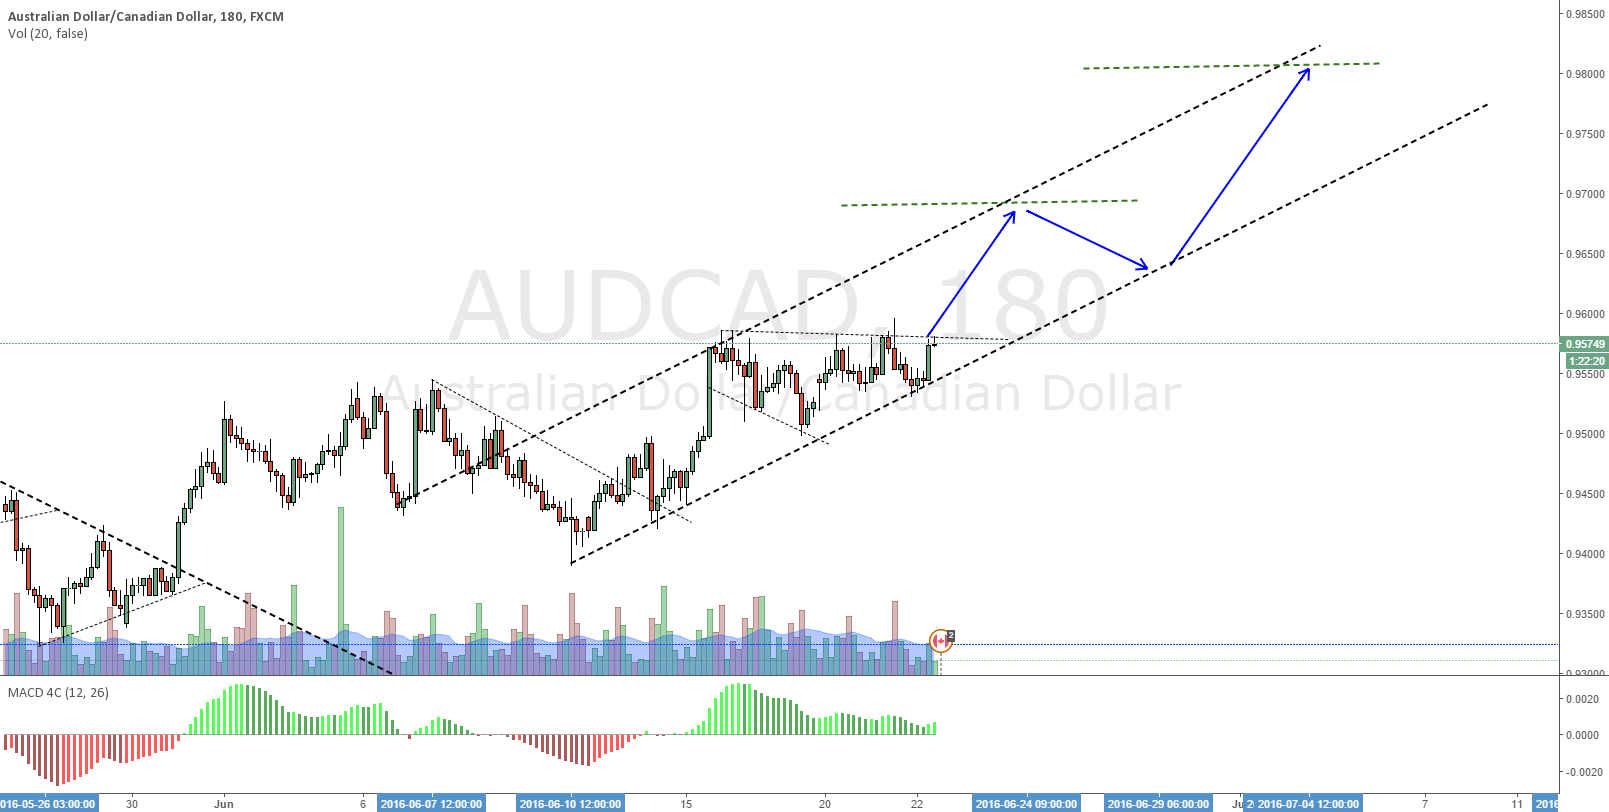 AUD wave 3 completion, then 4 and 5